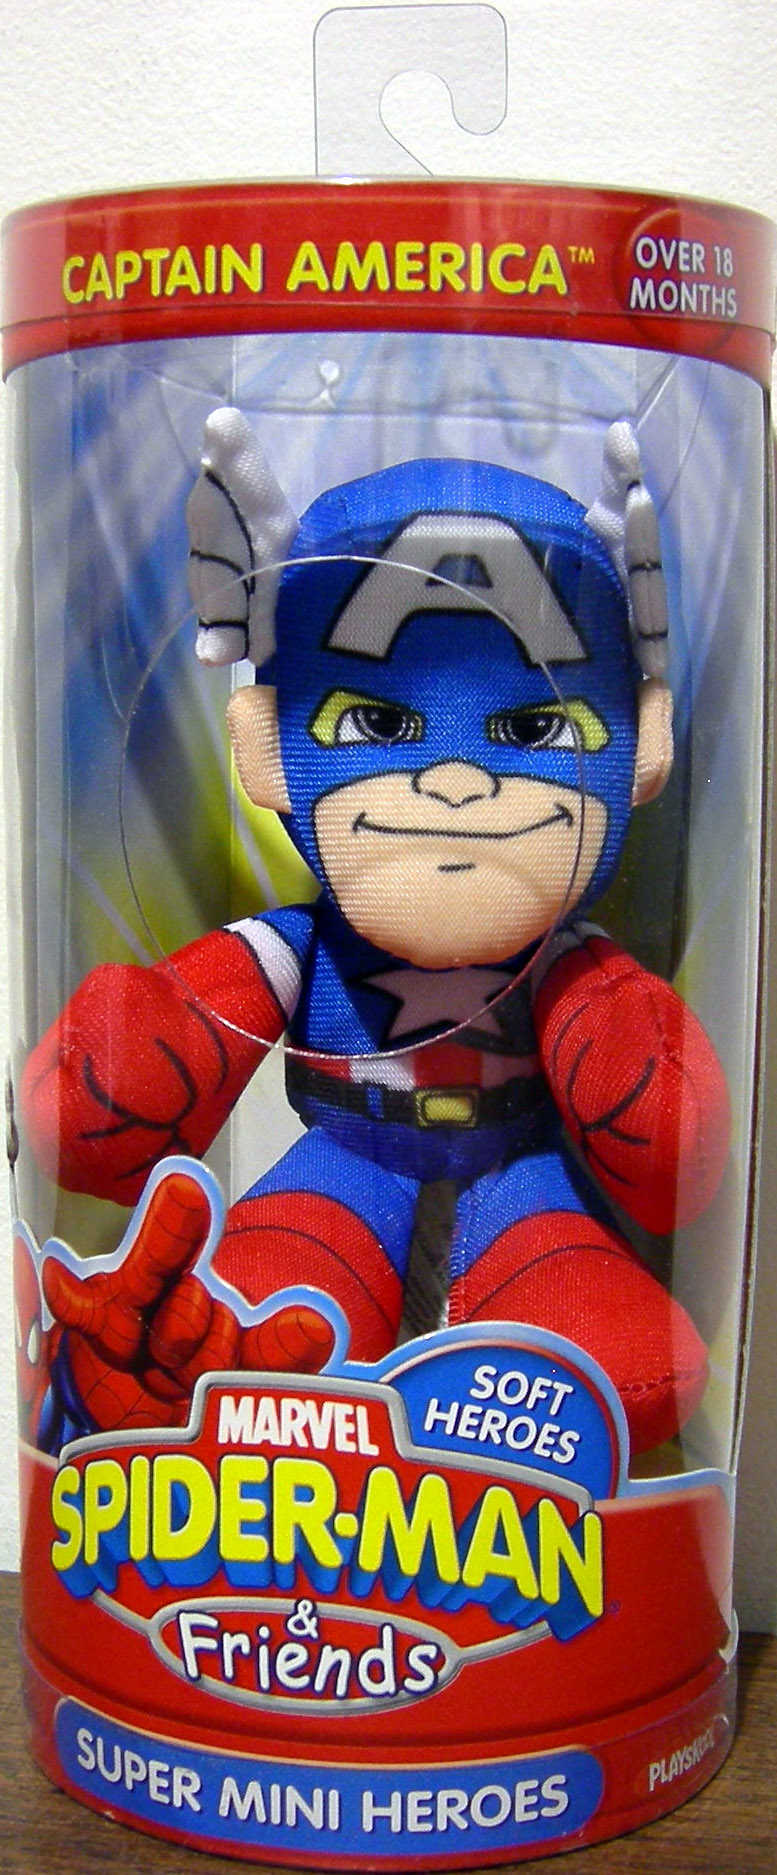 Captain America Super Mini Heroes Plush (Spider-Man & Friends)